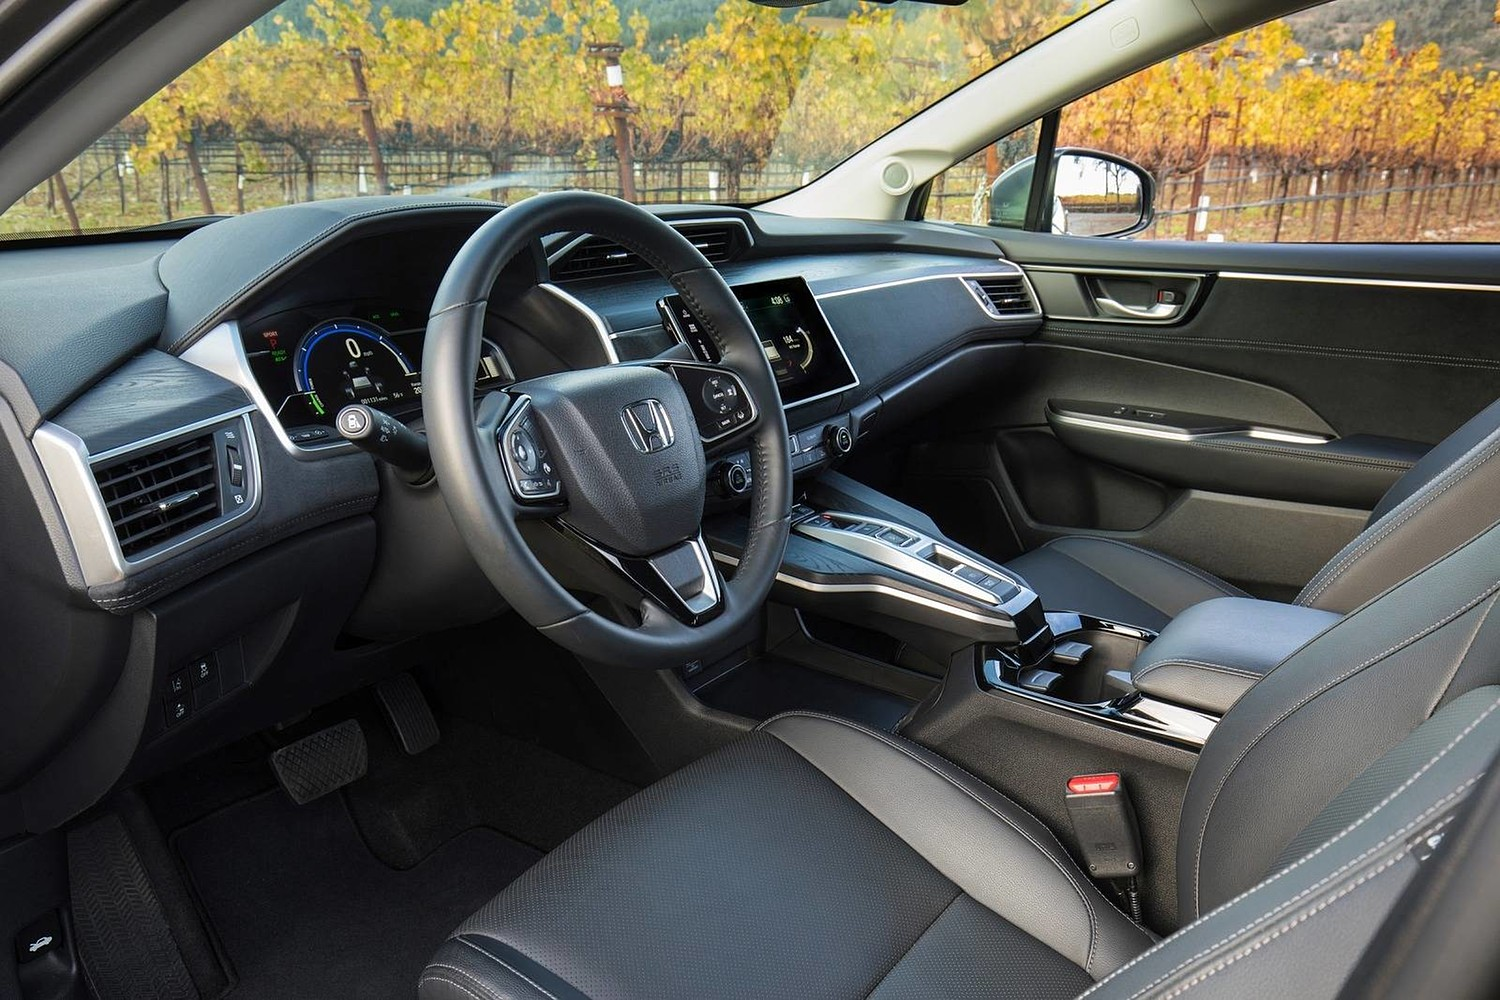 2018 Honda Clarity Touring Plug-In Hybrid Sedan Steering Wheel Detail Shown